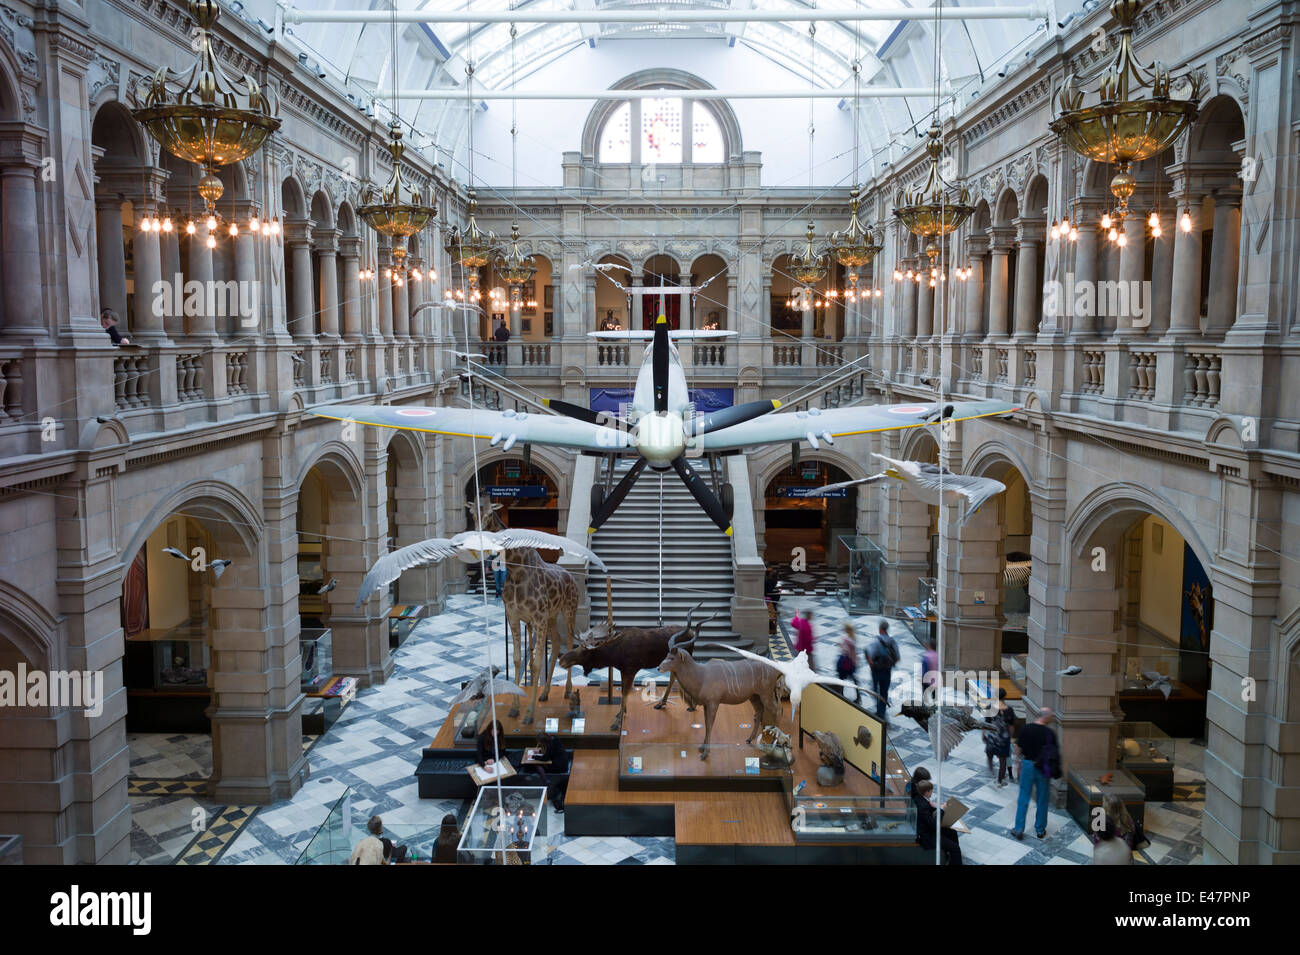 Exhibition Displays Glasgow : Visitors at kelvingrove art gallery and museum with